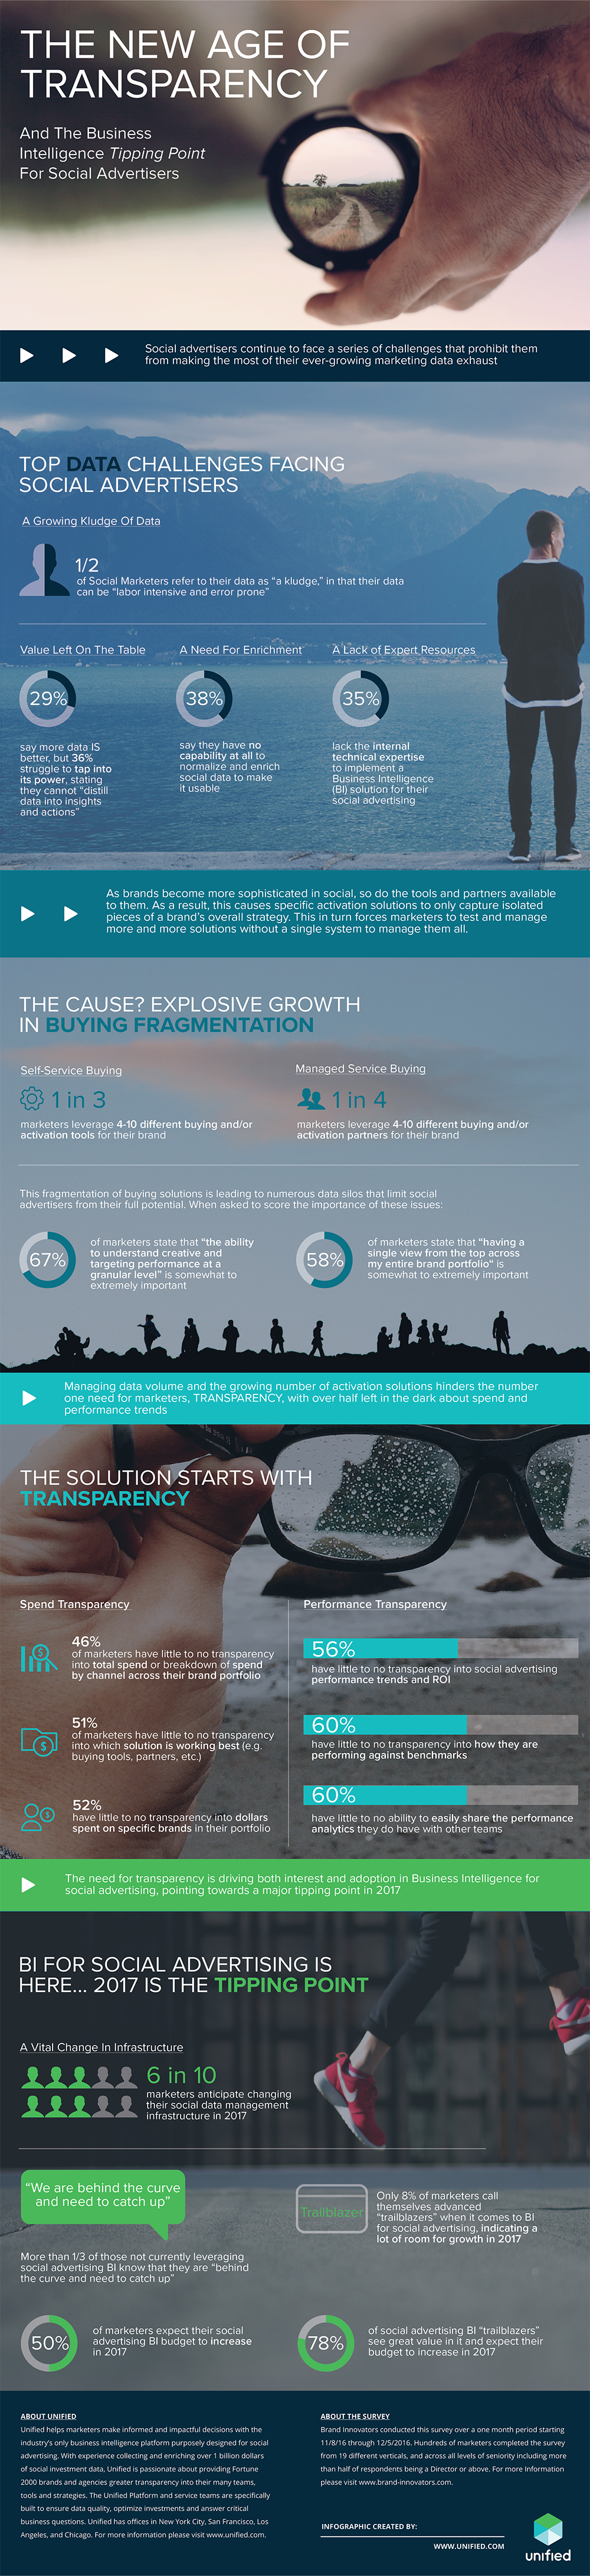 social-media-transparency-infographic